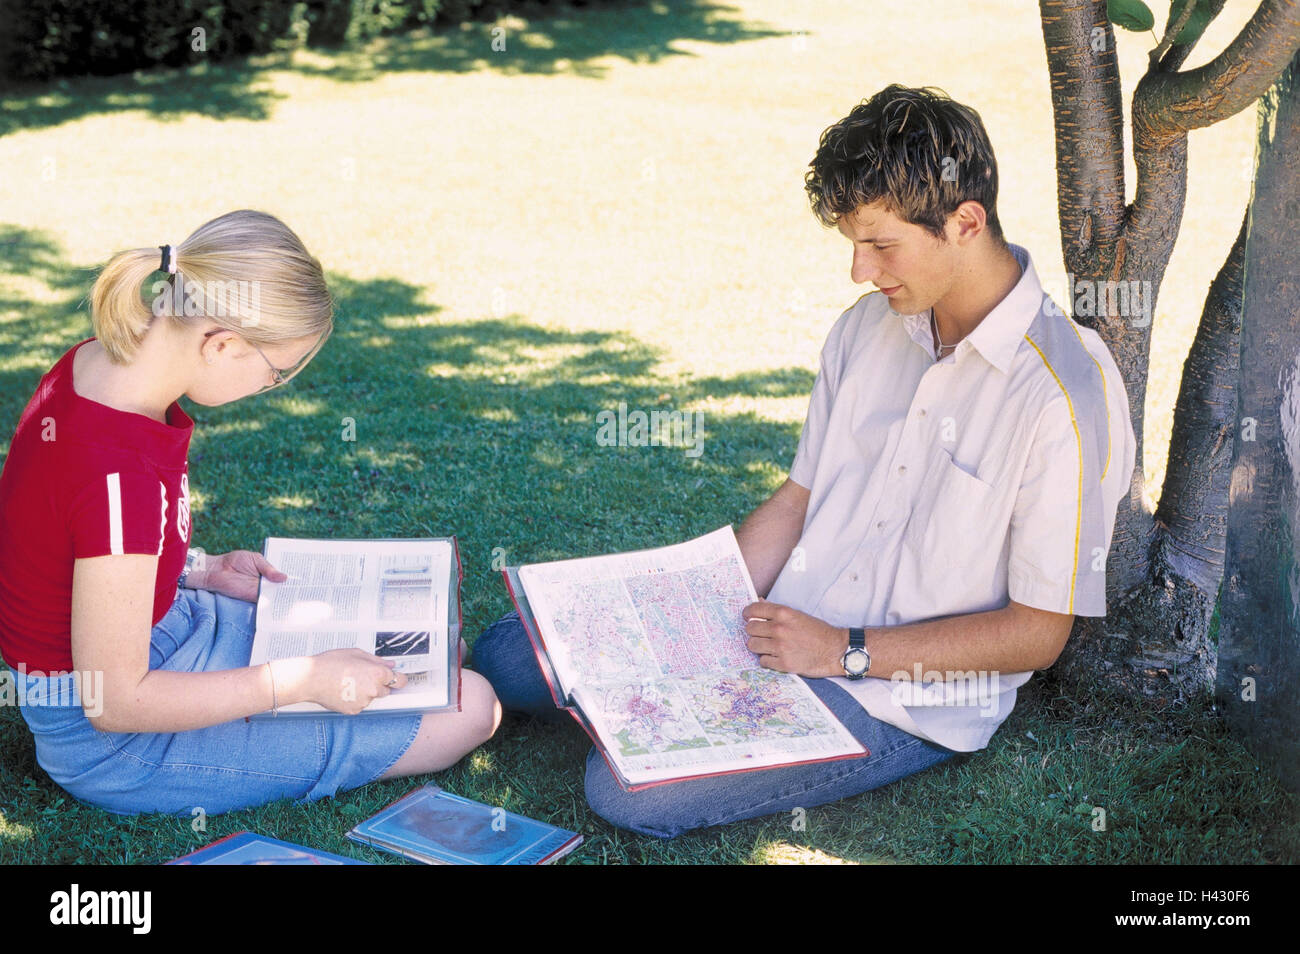 Park, tree, shade, young persons, boy, girl, learn, together teenager, youth, summer, outside, schoolboy, friends, - Stock Image